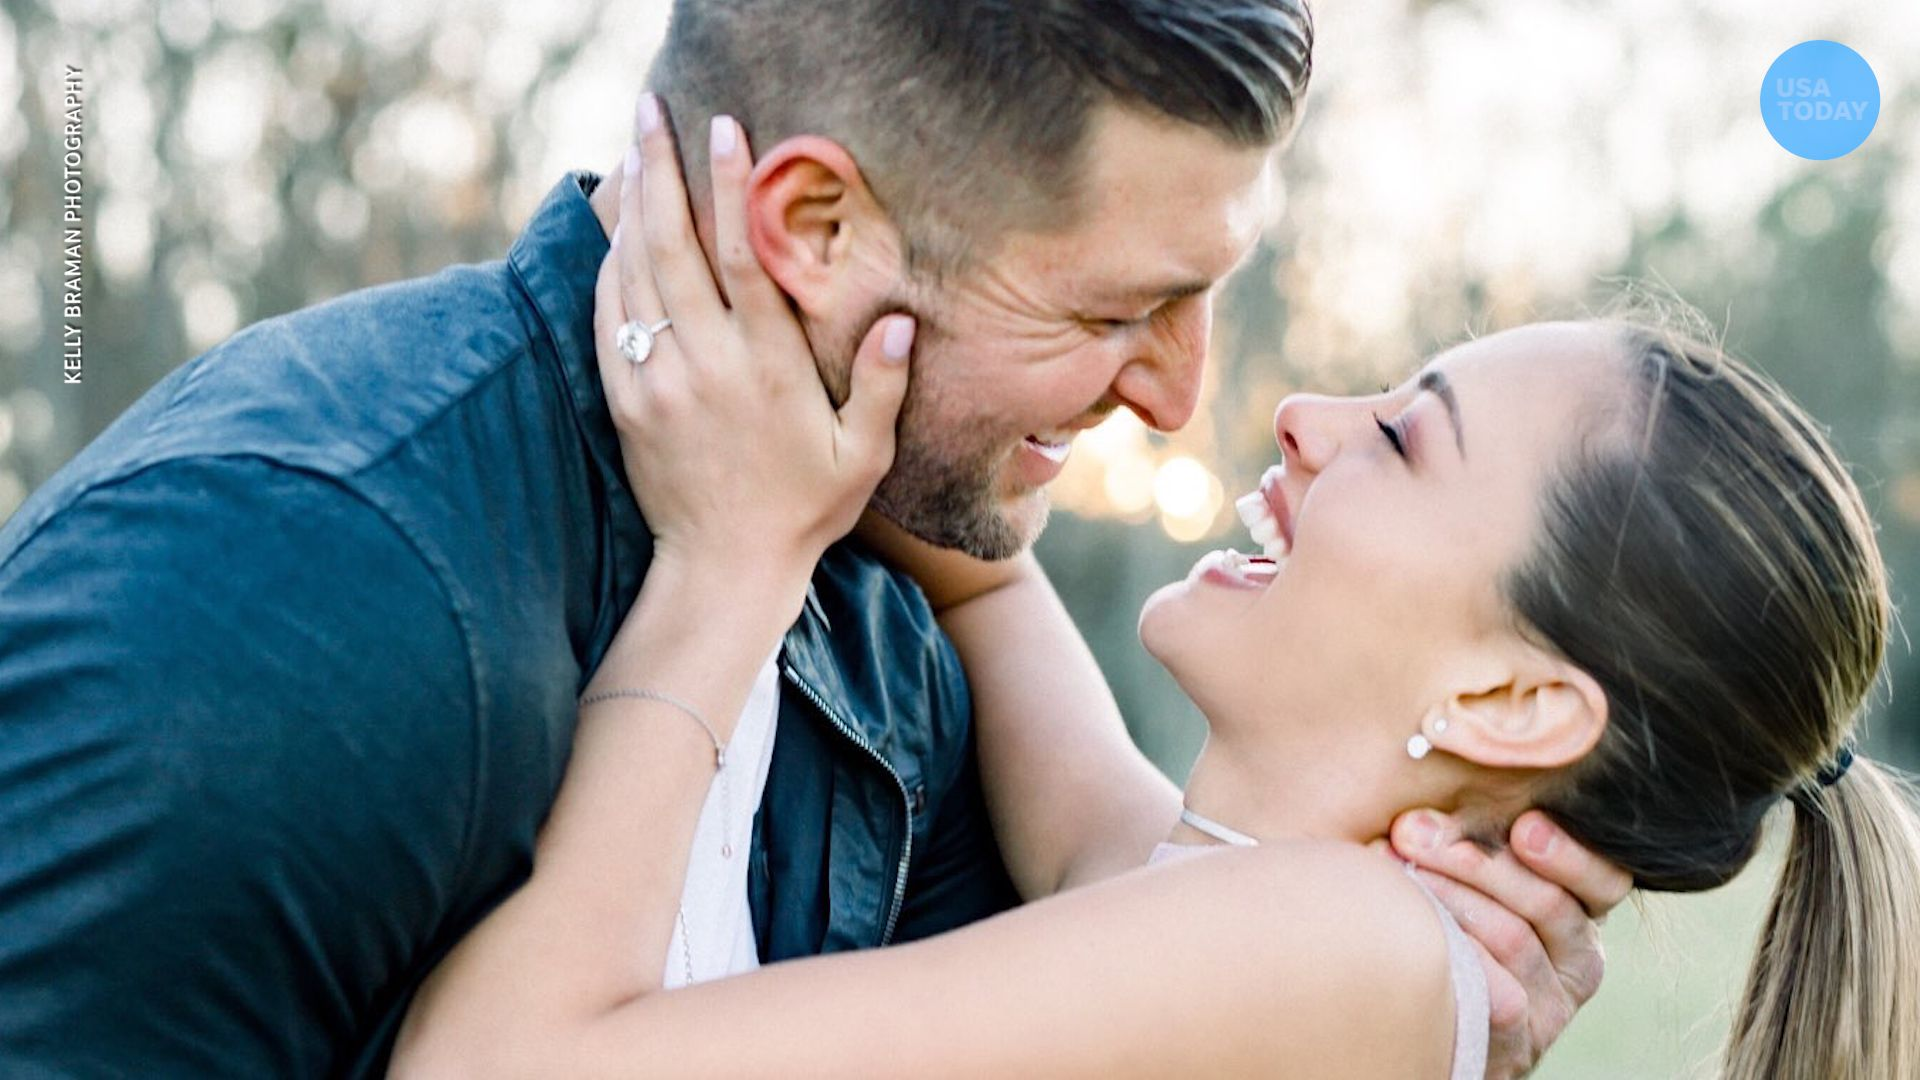 Tim Tebow engaged to former Miss Universe Demi Leigh Nel Peters 1920x1080